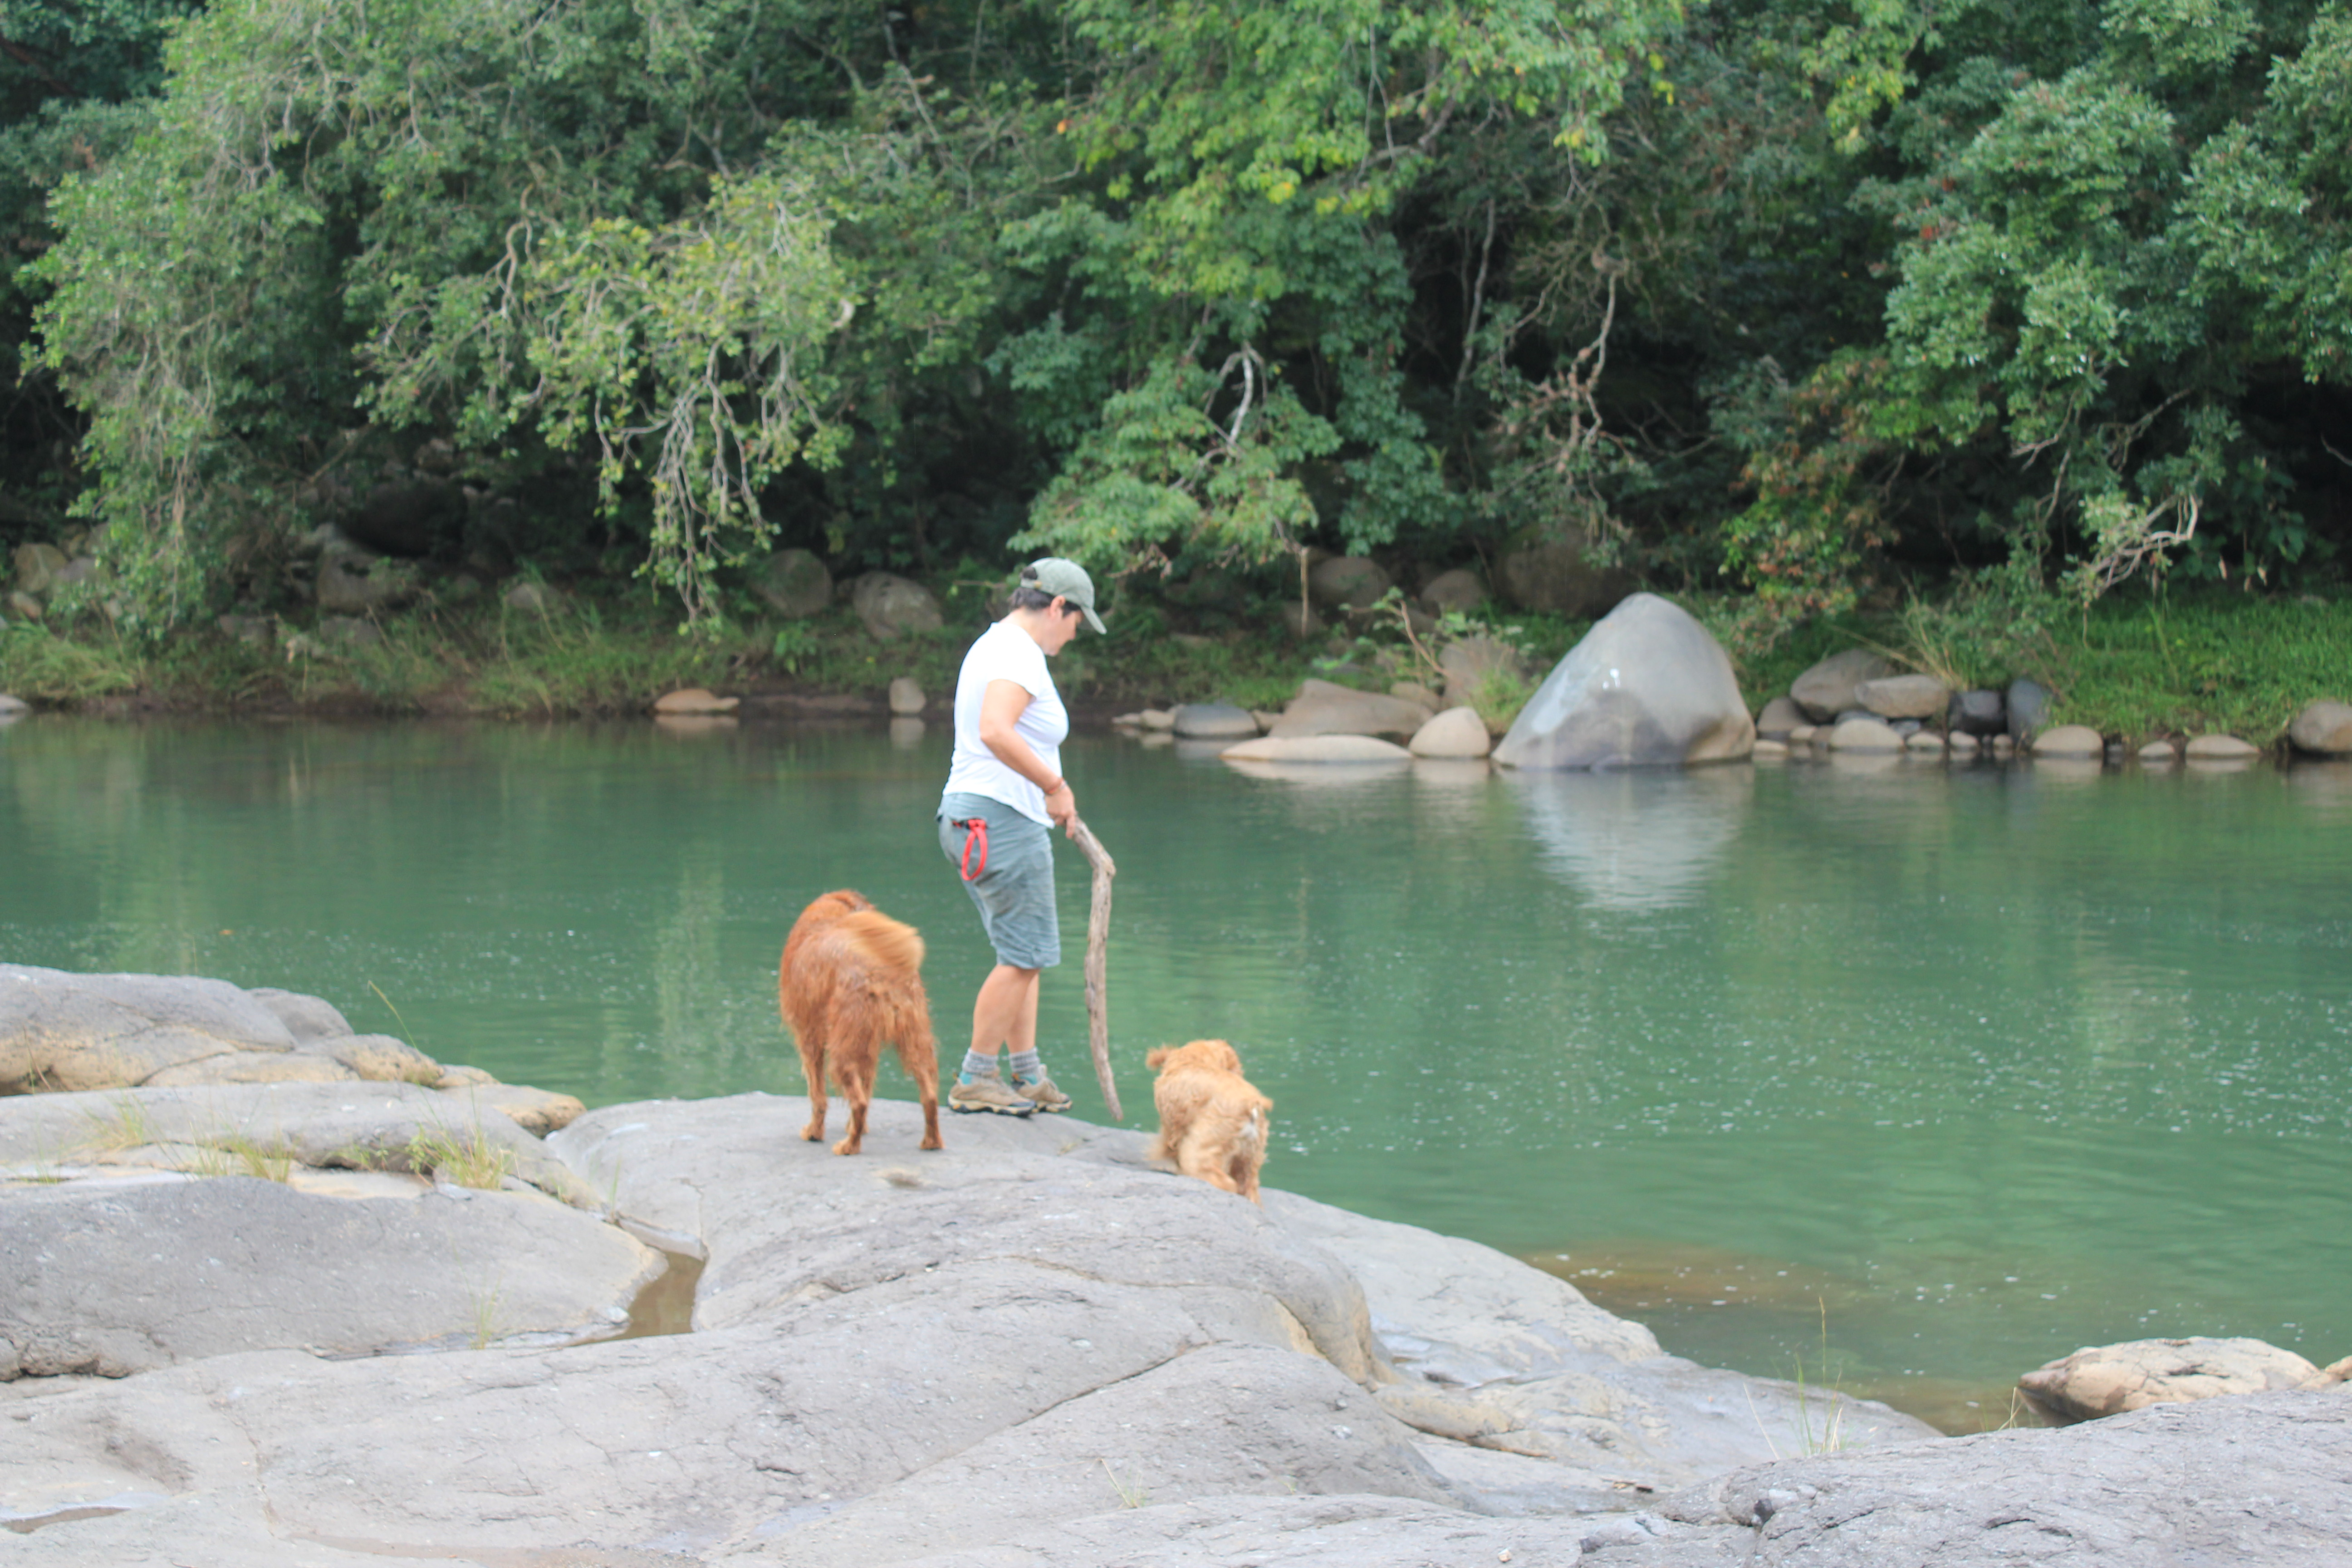 IMG_7691 Visiting Boquete, Panama? Here are some of our faves! Boquete Panama The Expat Life